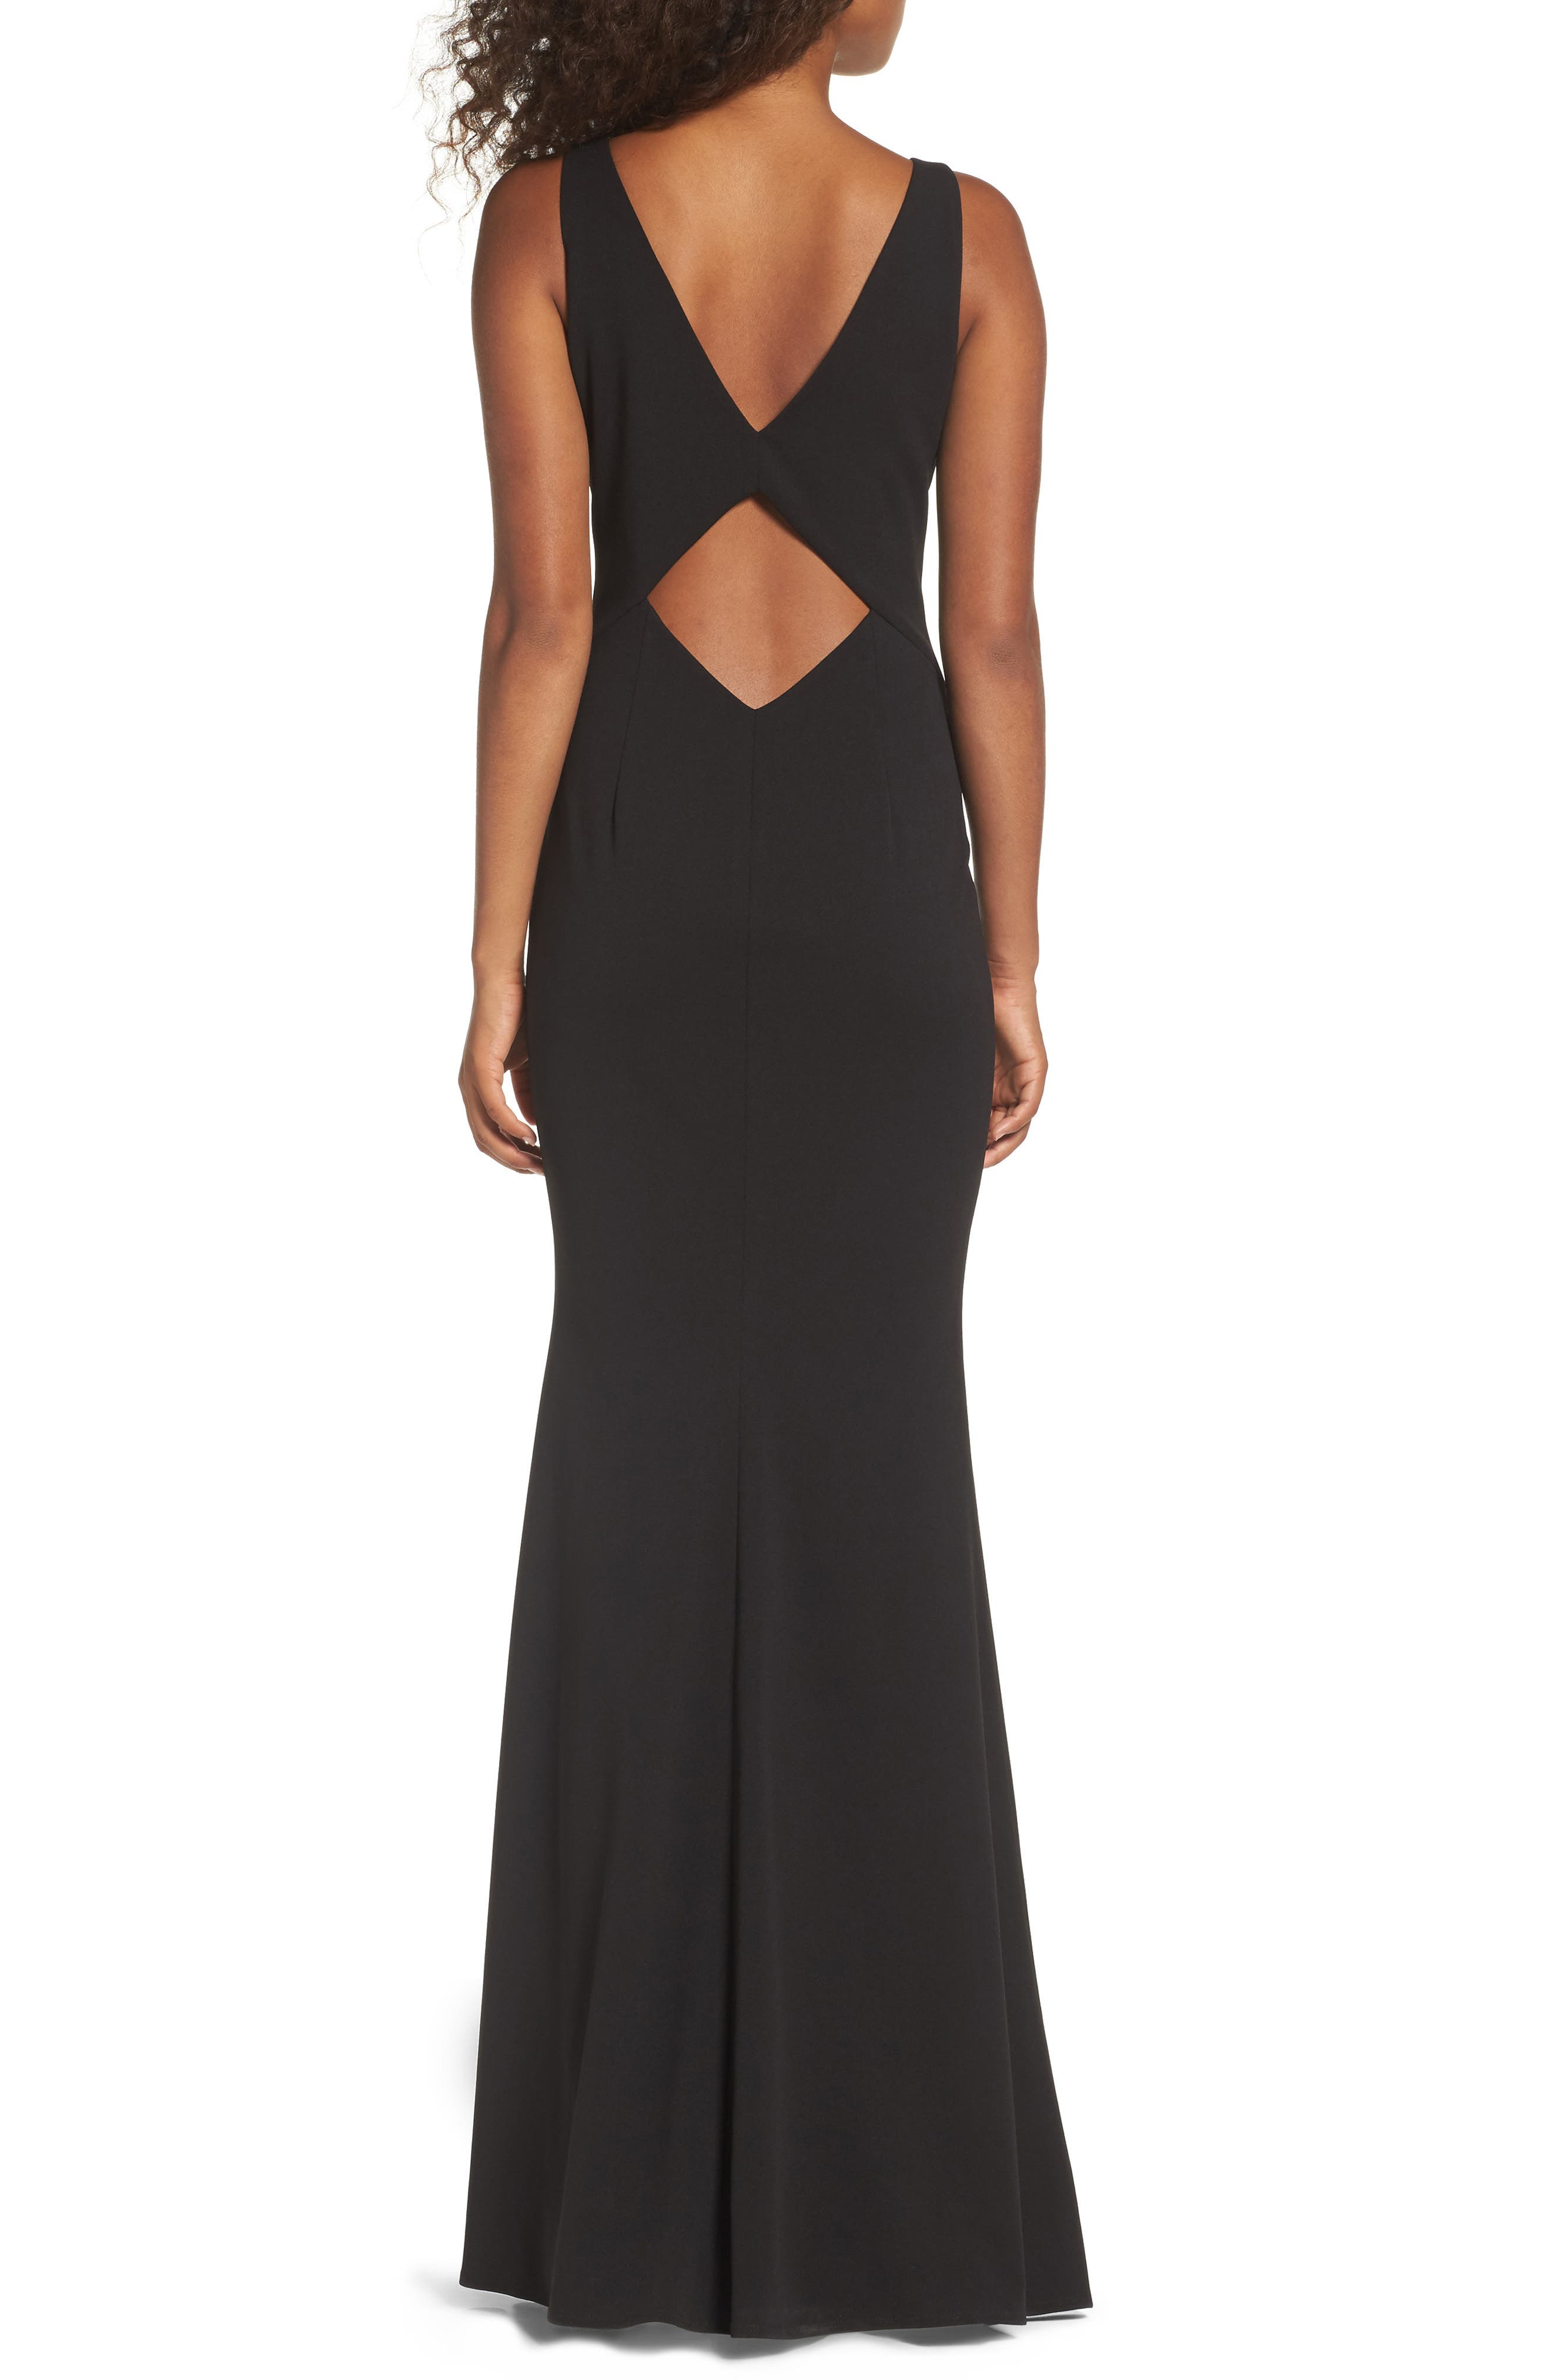 KATIE MAY,                             Mischka V-Neck Crepe Gown,                             Alternate thumbnail 2, color,                             BLACK